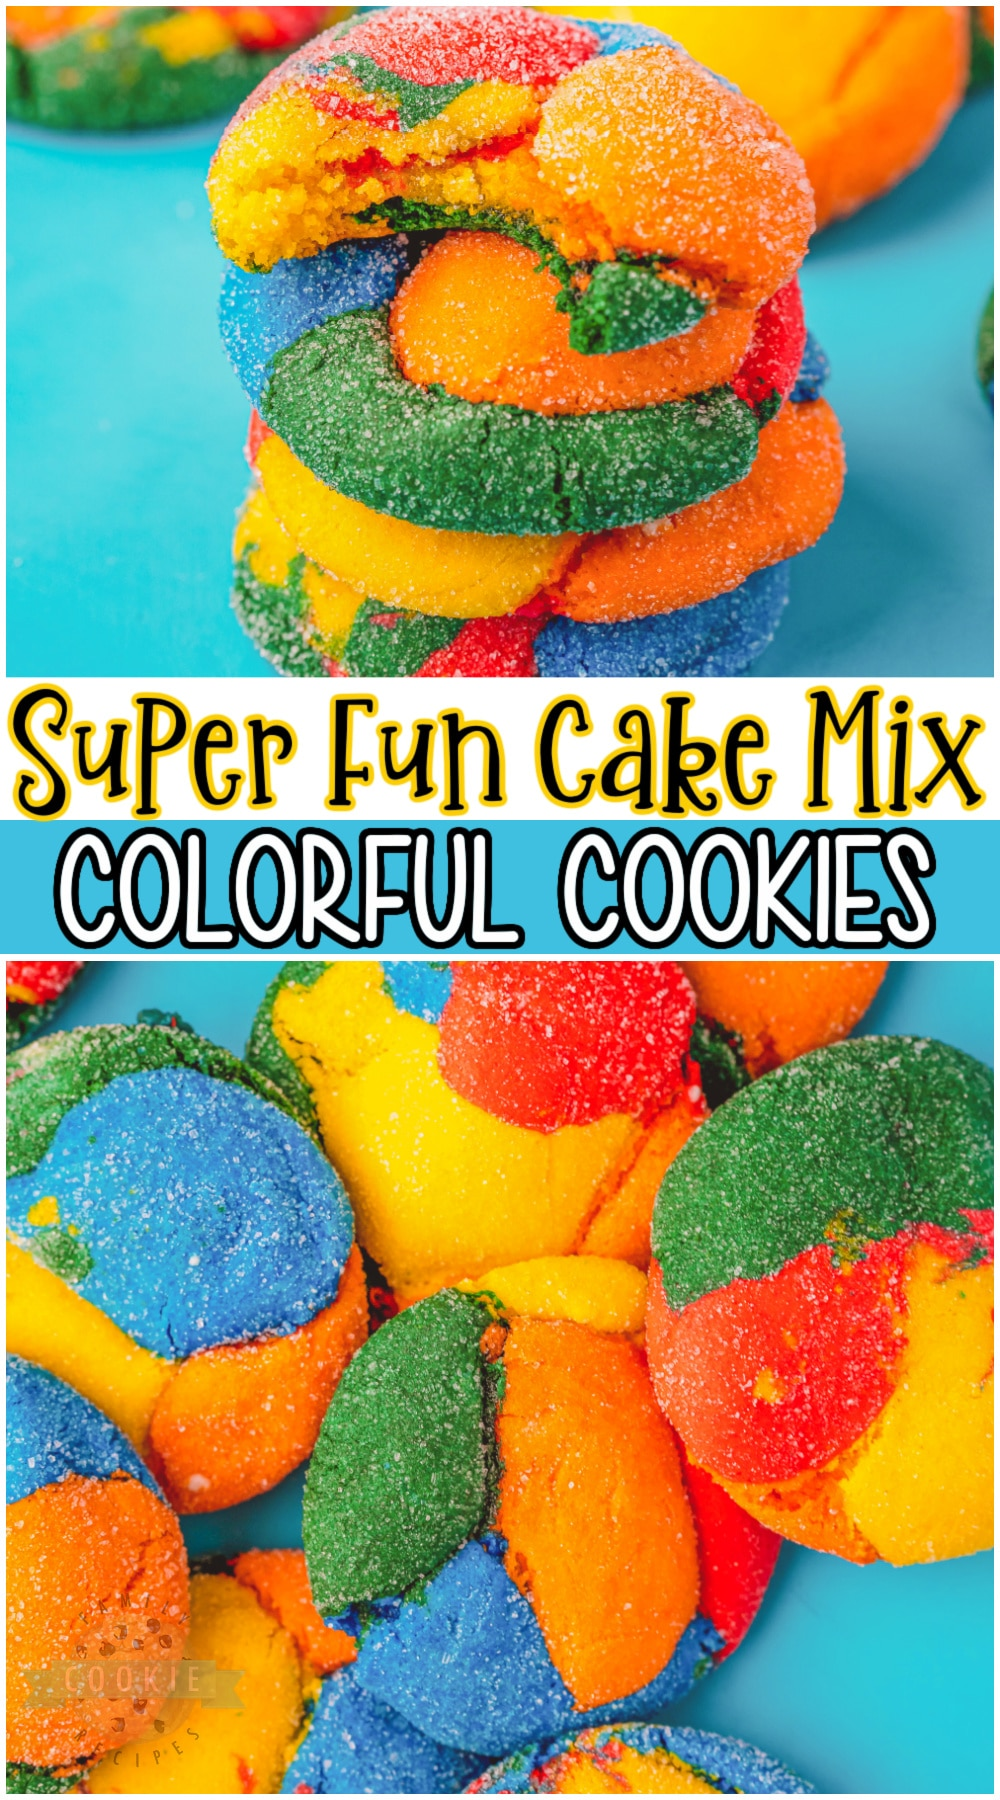 Bright & fun Colorful Cookies made with a cake mix! Simple recipe for soft, festive cookies perfect for Back To School. Your boxed cake mix is about to get an inventive and creative new upgrade! #colorful #cookies #backtoschool #colors #rainbow #baking #easyrecipe from FAMILY COOKIE RECIPES via @buttergirls